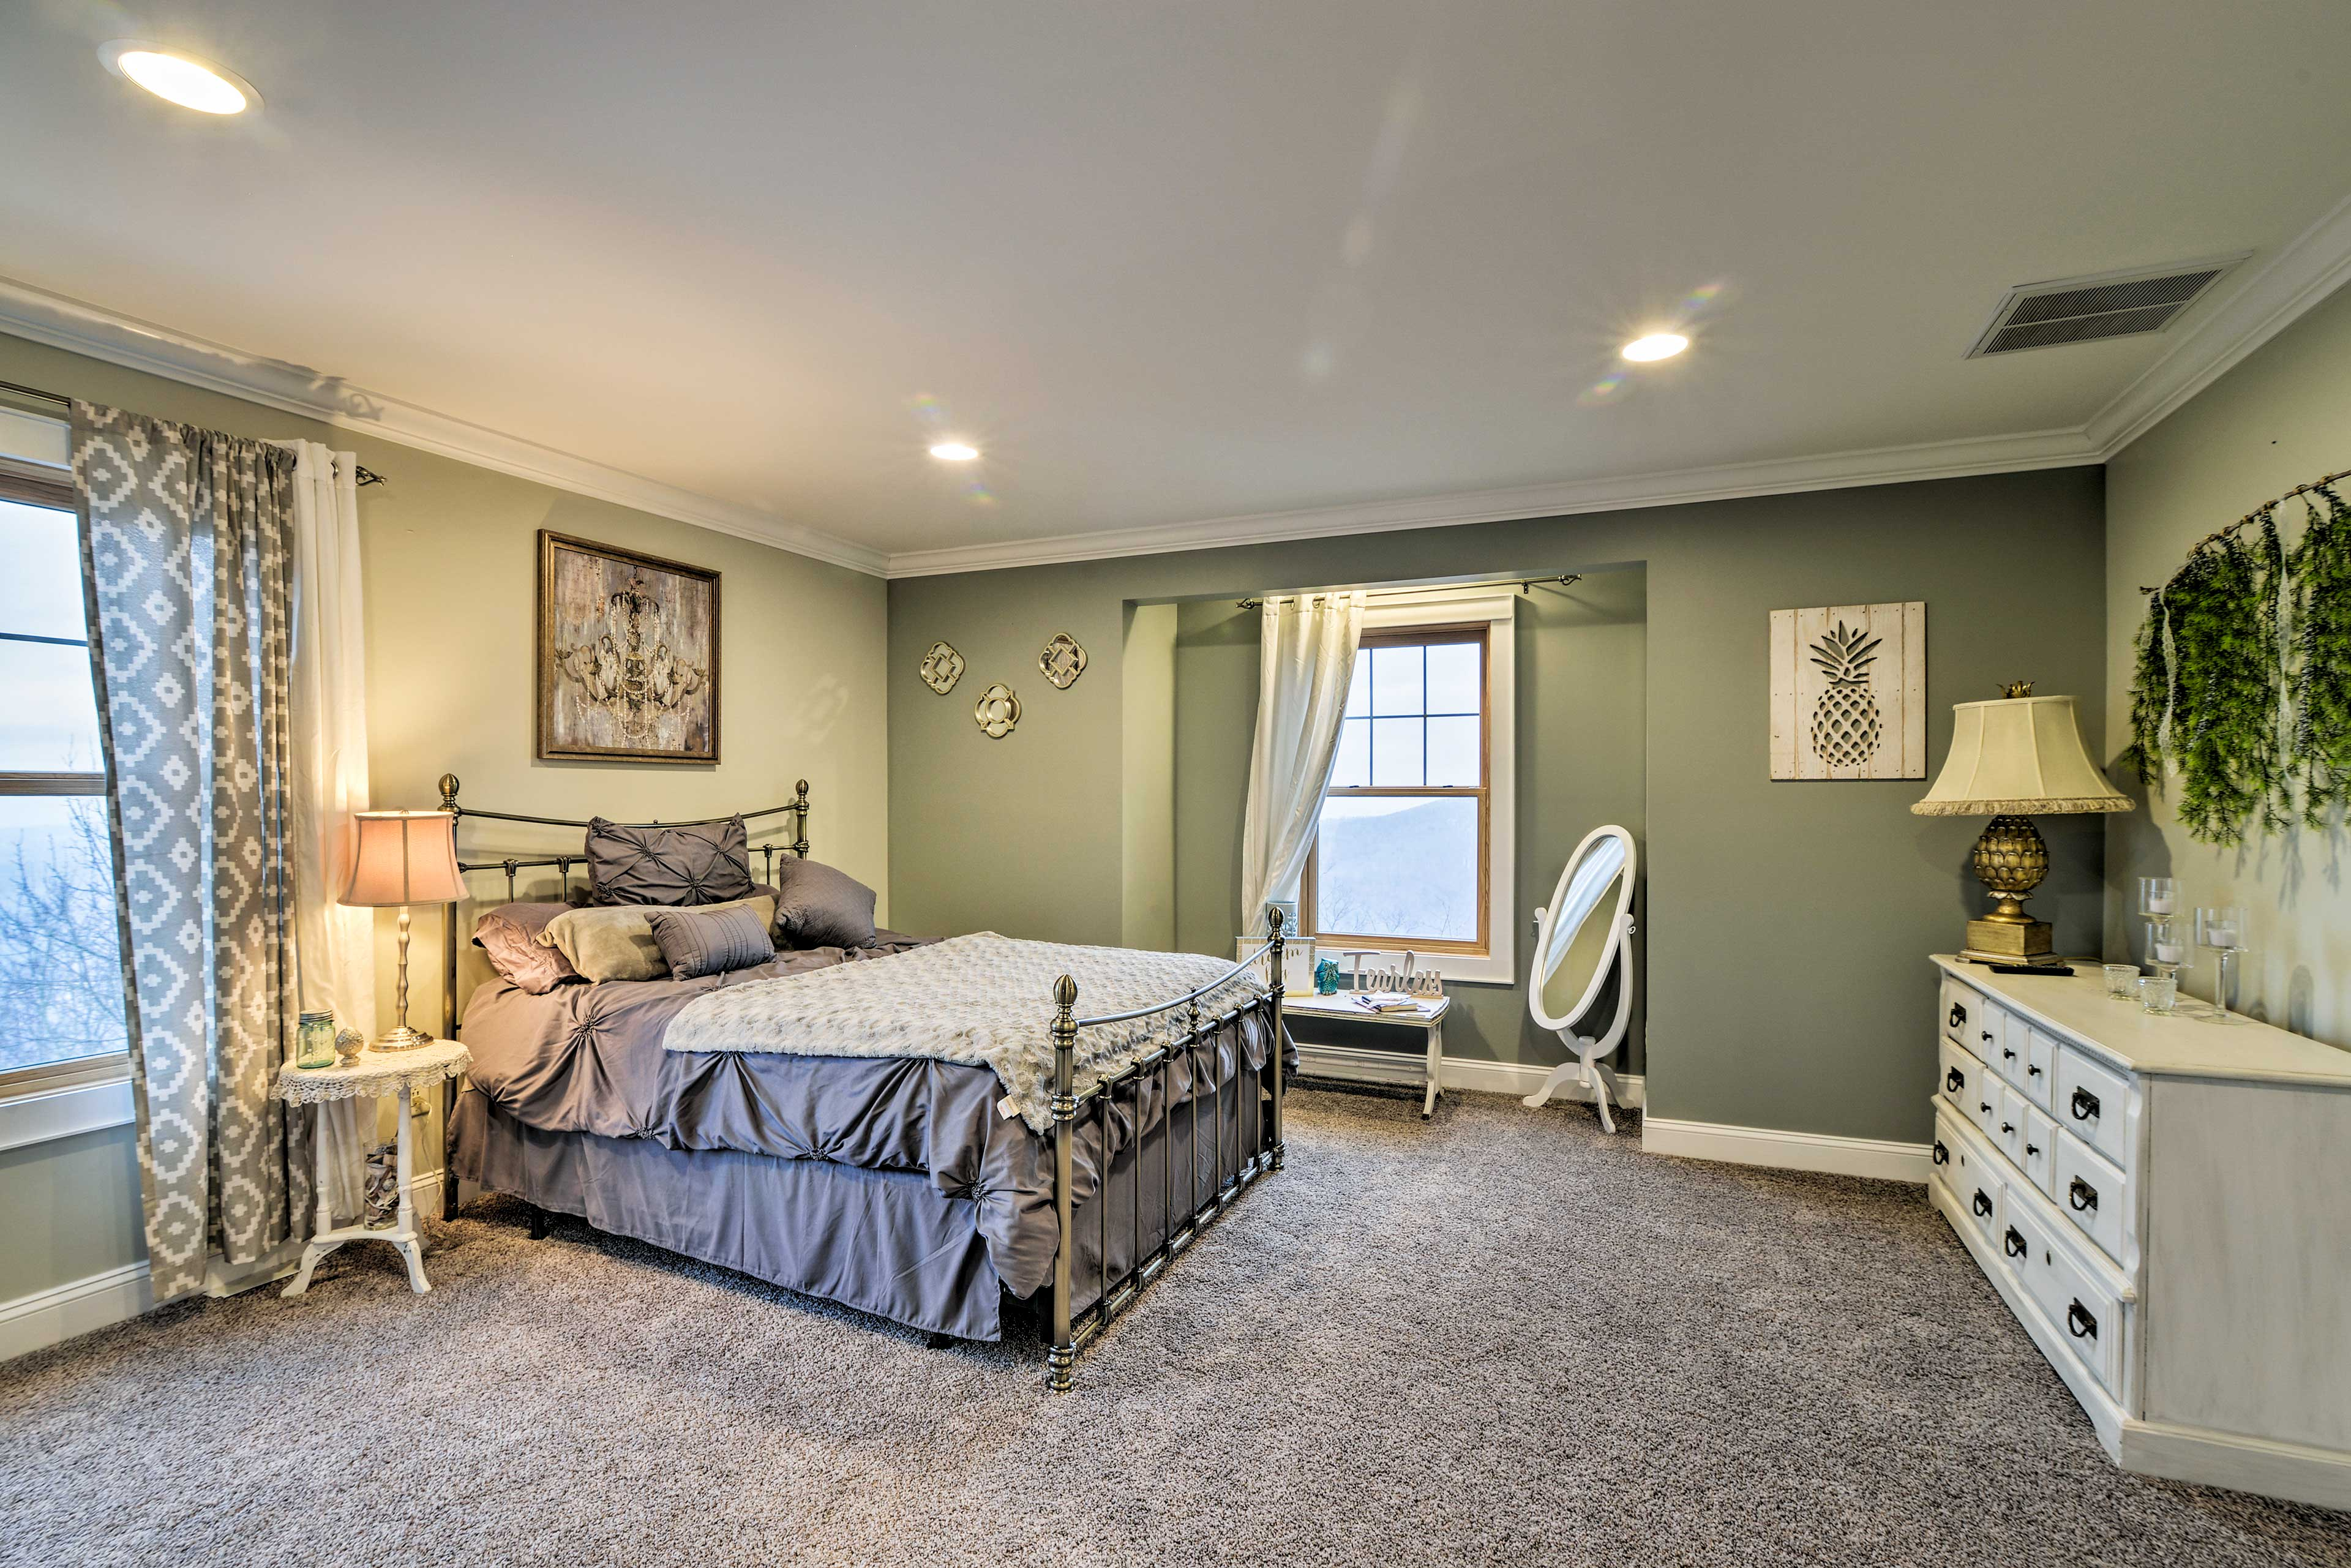 The second bedroom is equipped with a queen-sized bed.